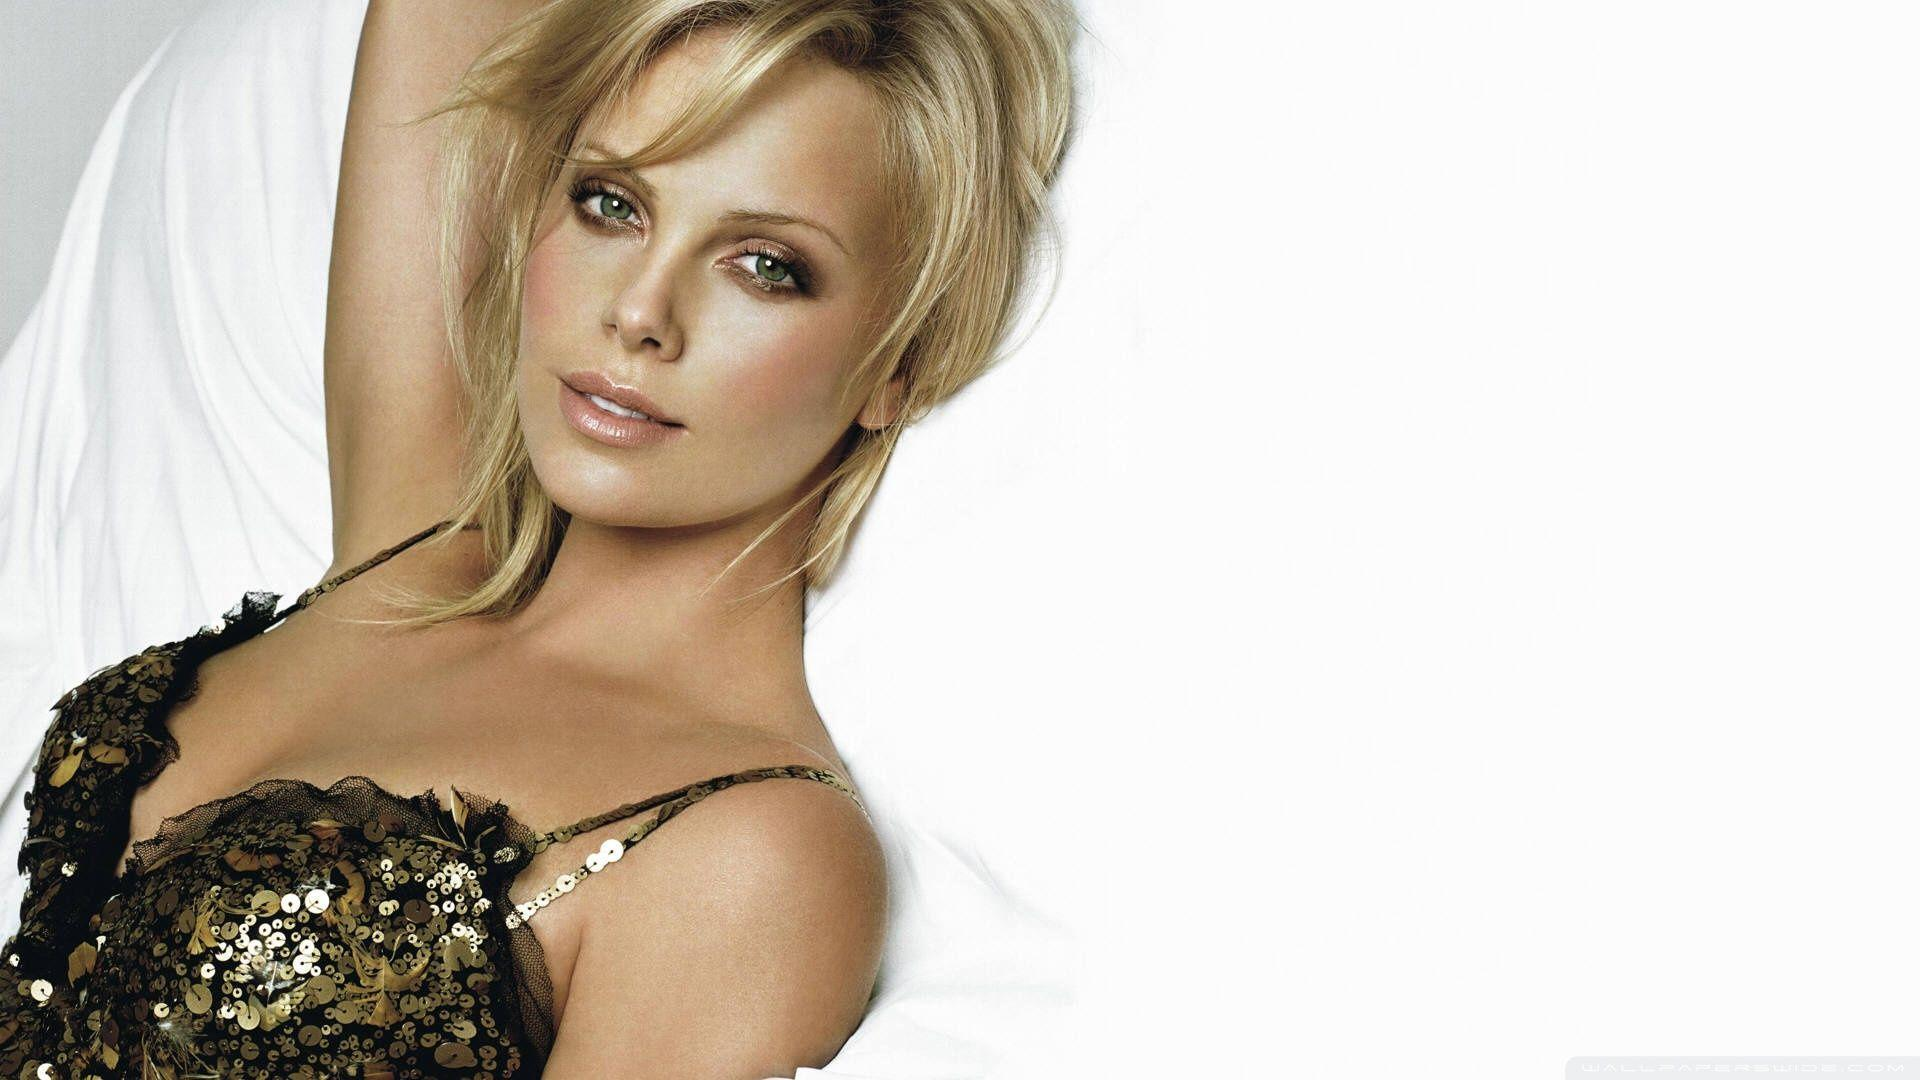 Charlize Theron 55 HD desktop wallpaper : Widescreen : High ...